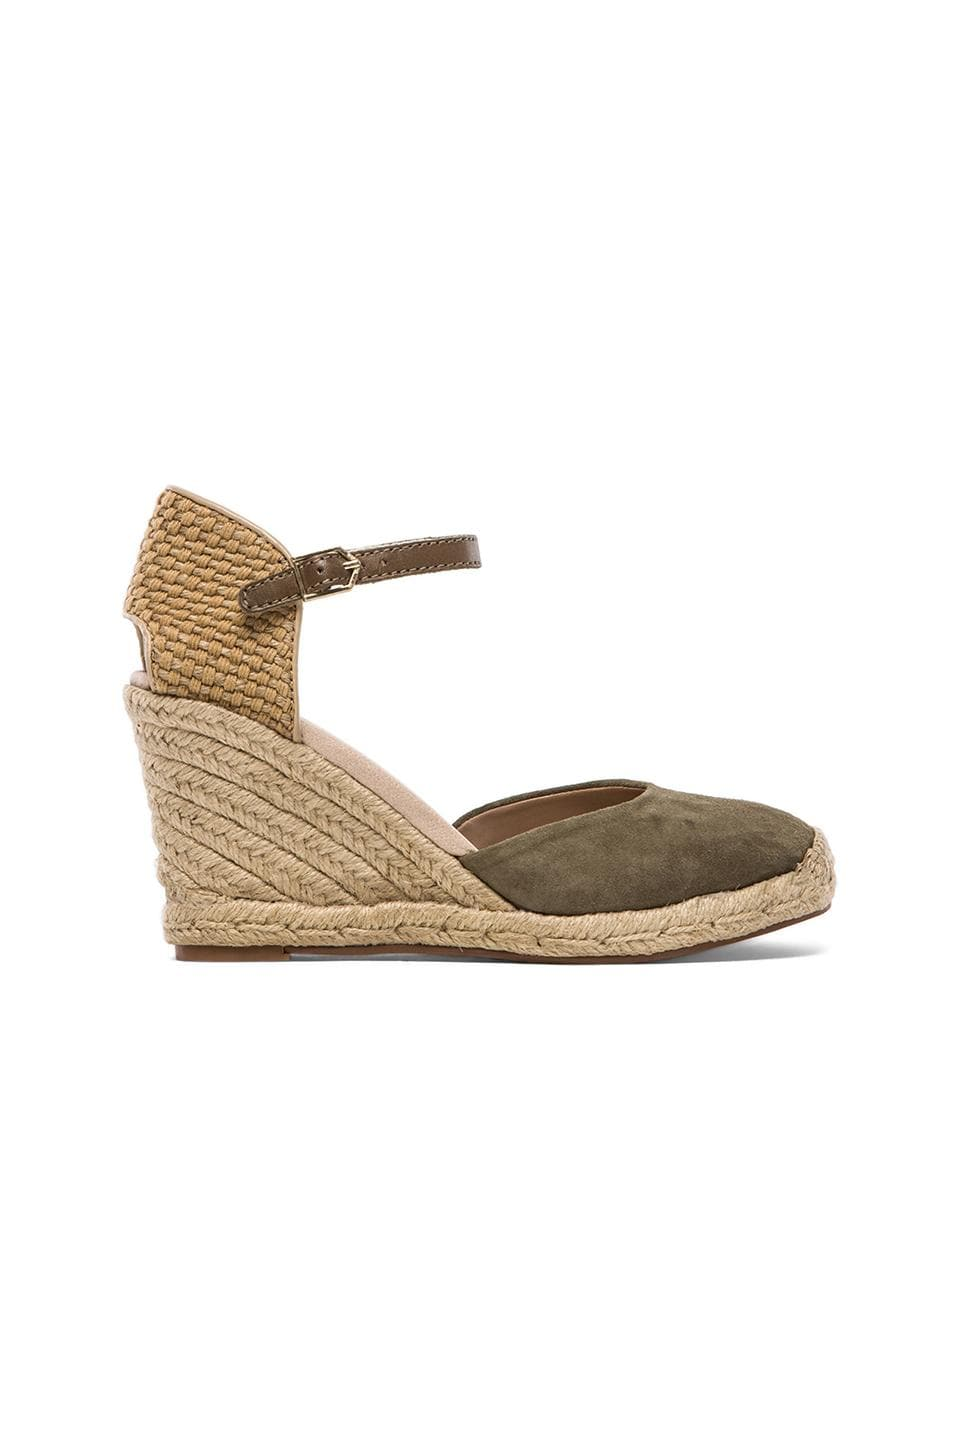 Sam Edelman Harmony Wedge in Moss Green